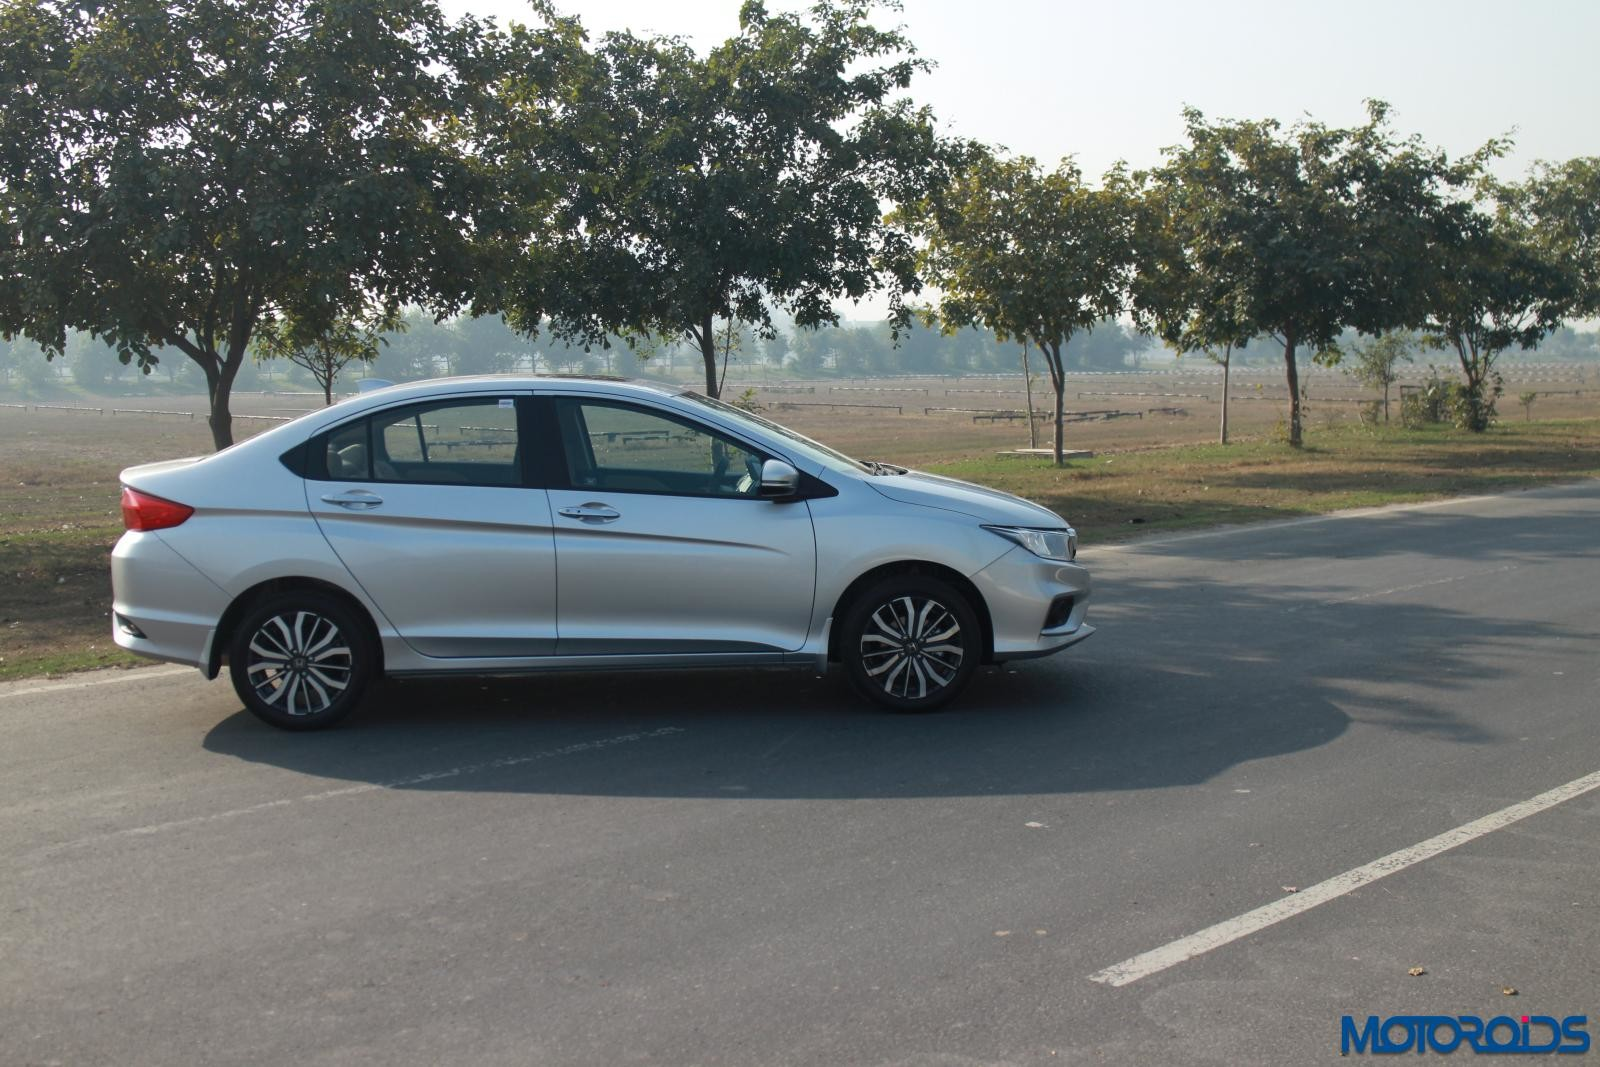 February 16, 2017-2017-Honda-City-Review-73.jpg